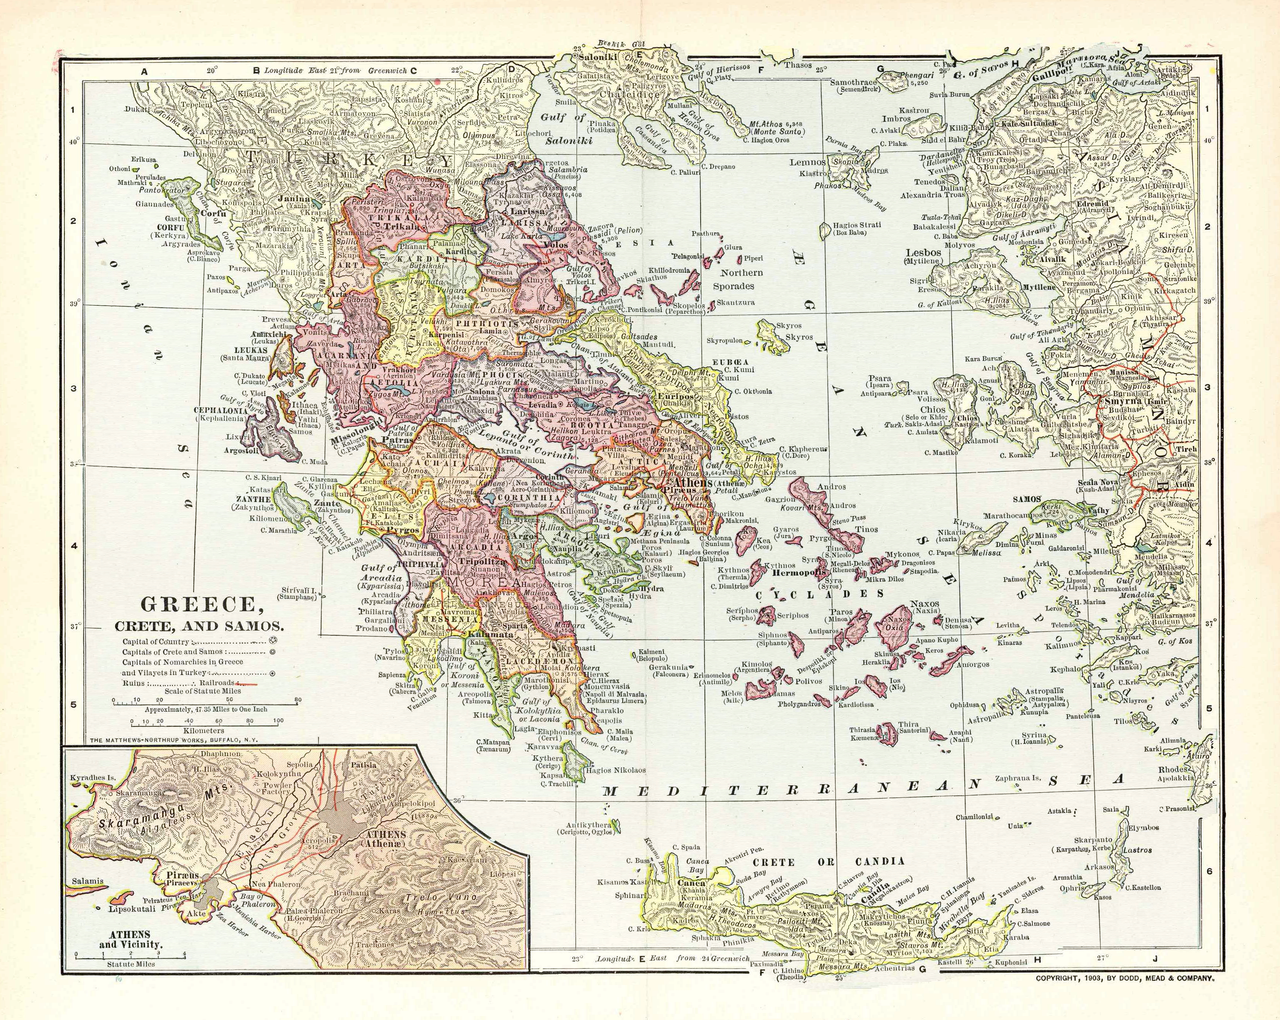 File:Map of Greece 1903.png - Wikipedia